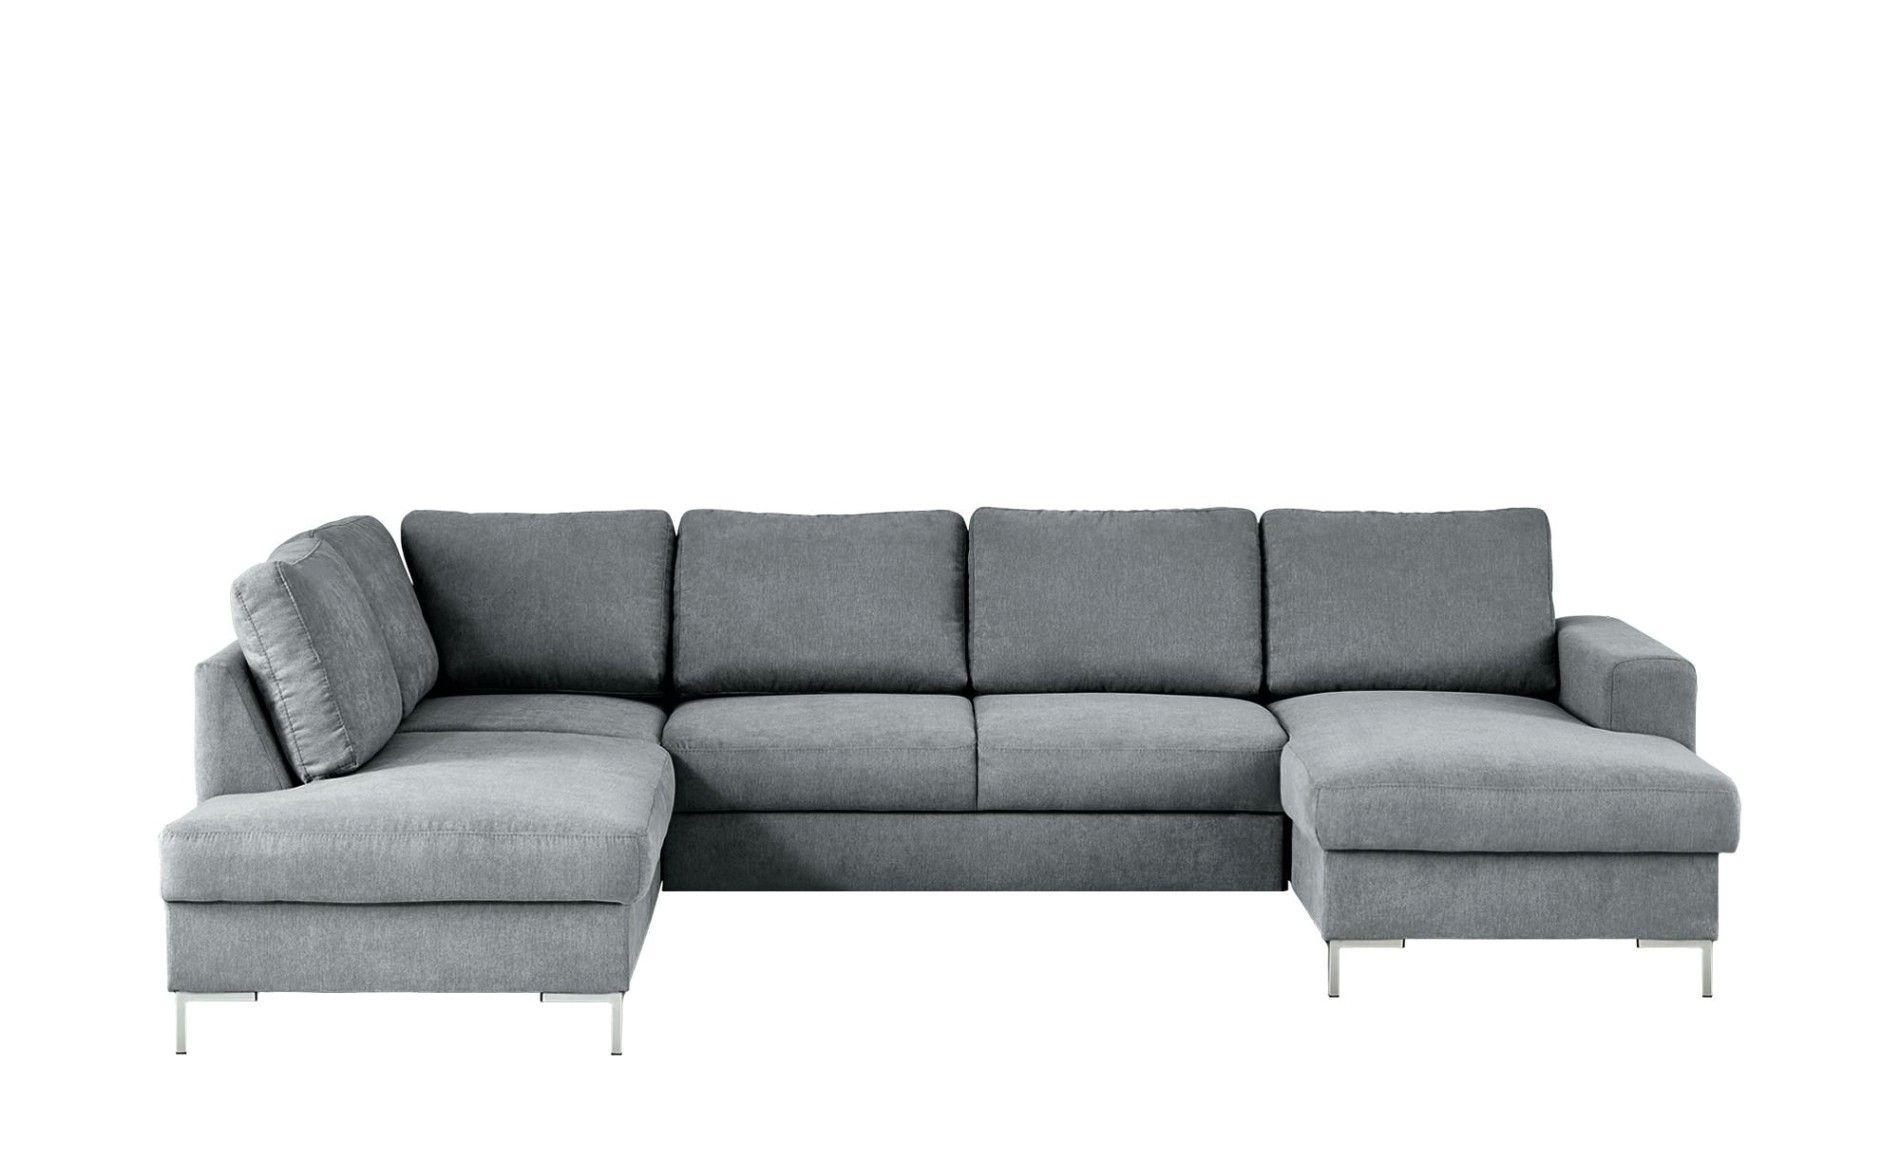 Poco Couch Angebot